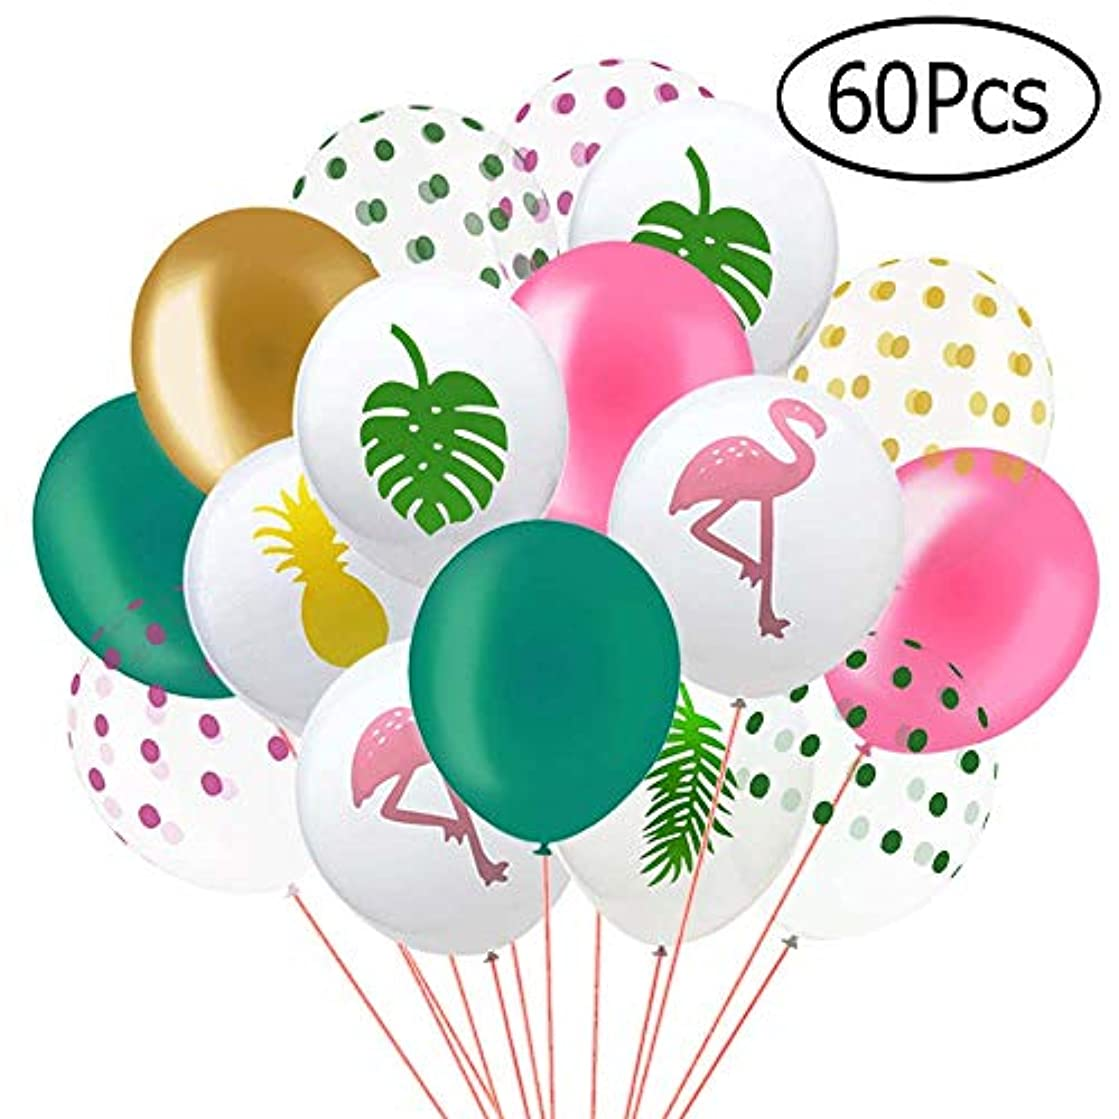 Aniann 60 Pack Hawaii Tropical Party Balloons, 12 Inches Flamingo Pineapple Tropical Leaf Round Dots Latex Party Balloons with Dots for Hawaii Luau Party Decorations Birthday Wedding Decorations